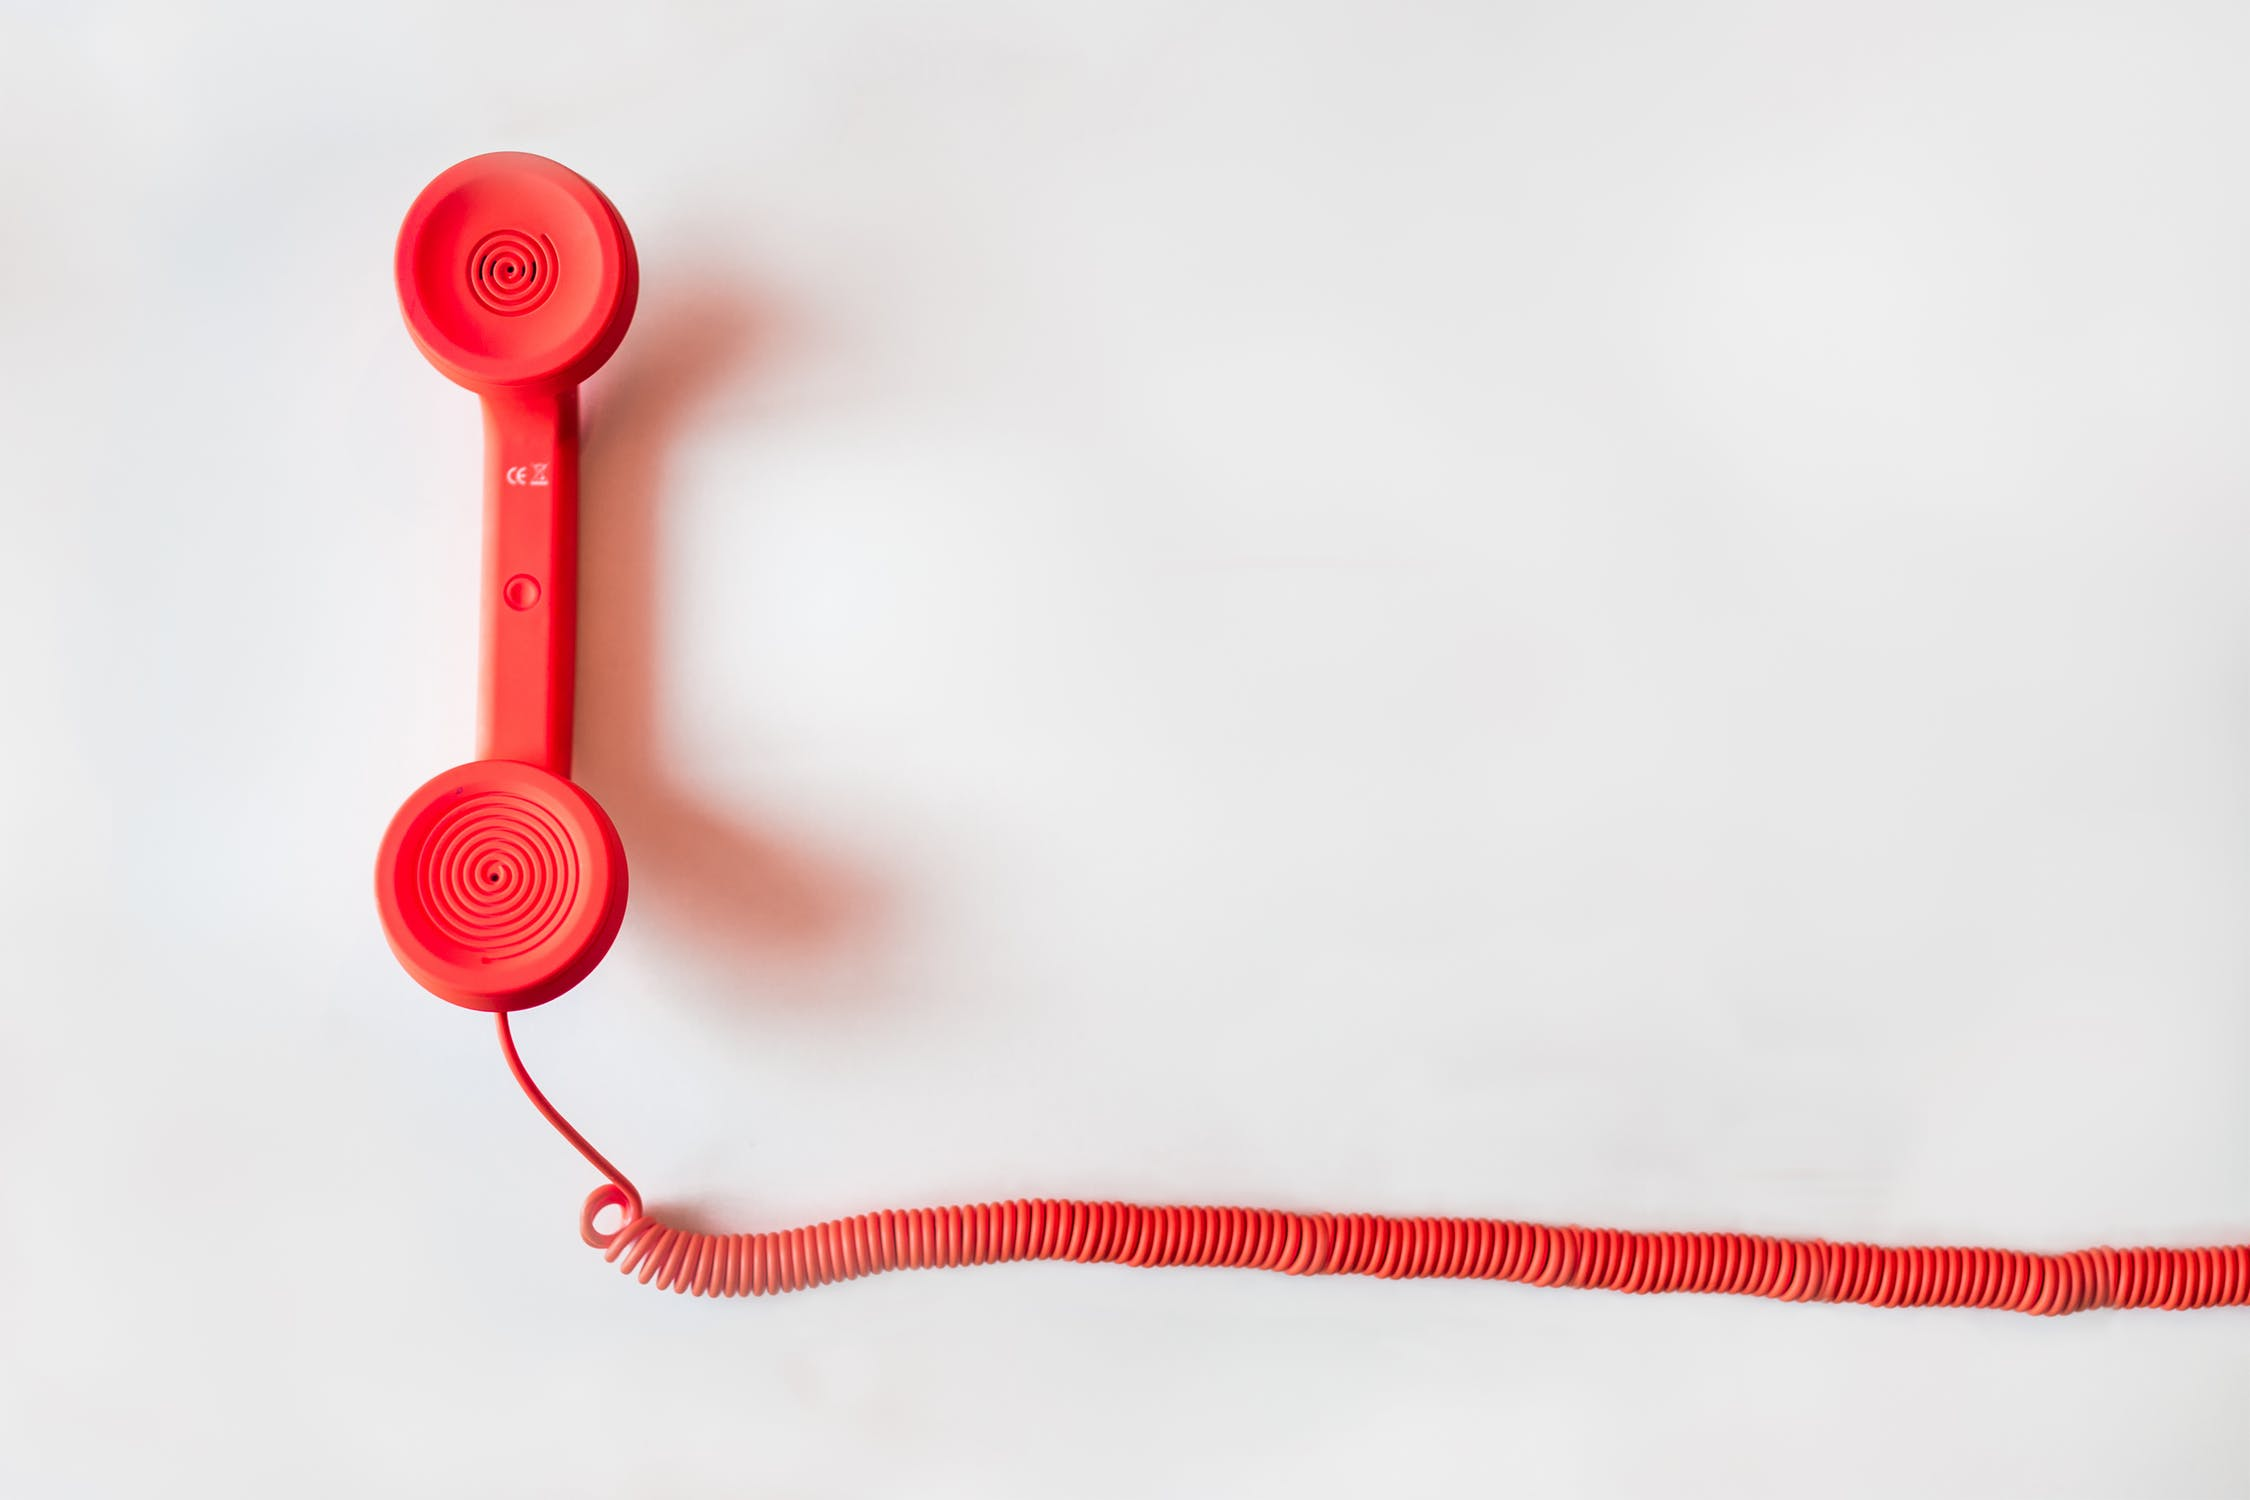 A red corded telephone sits on a white background. Photo by pexels user negative space. Photo used courtesy of Pexels.com